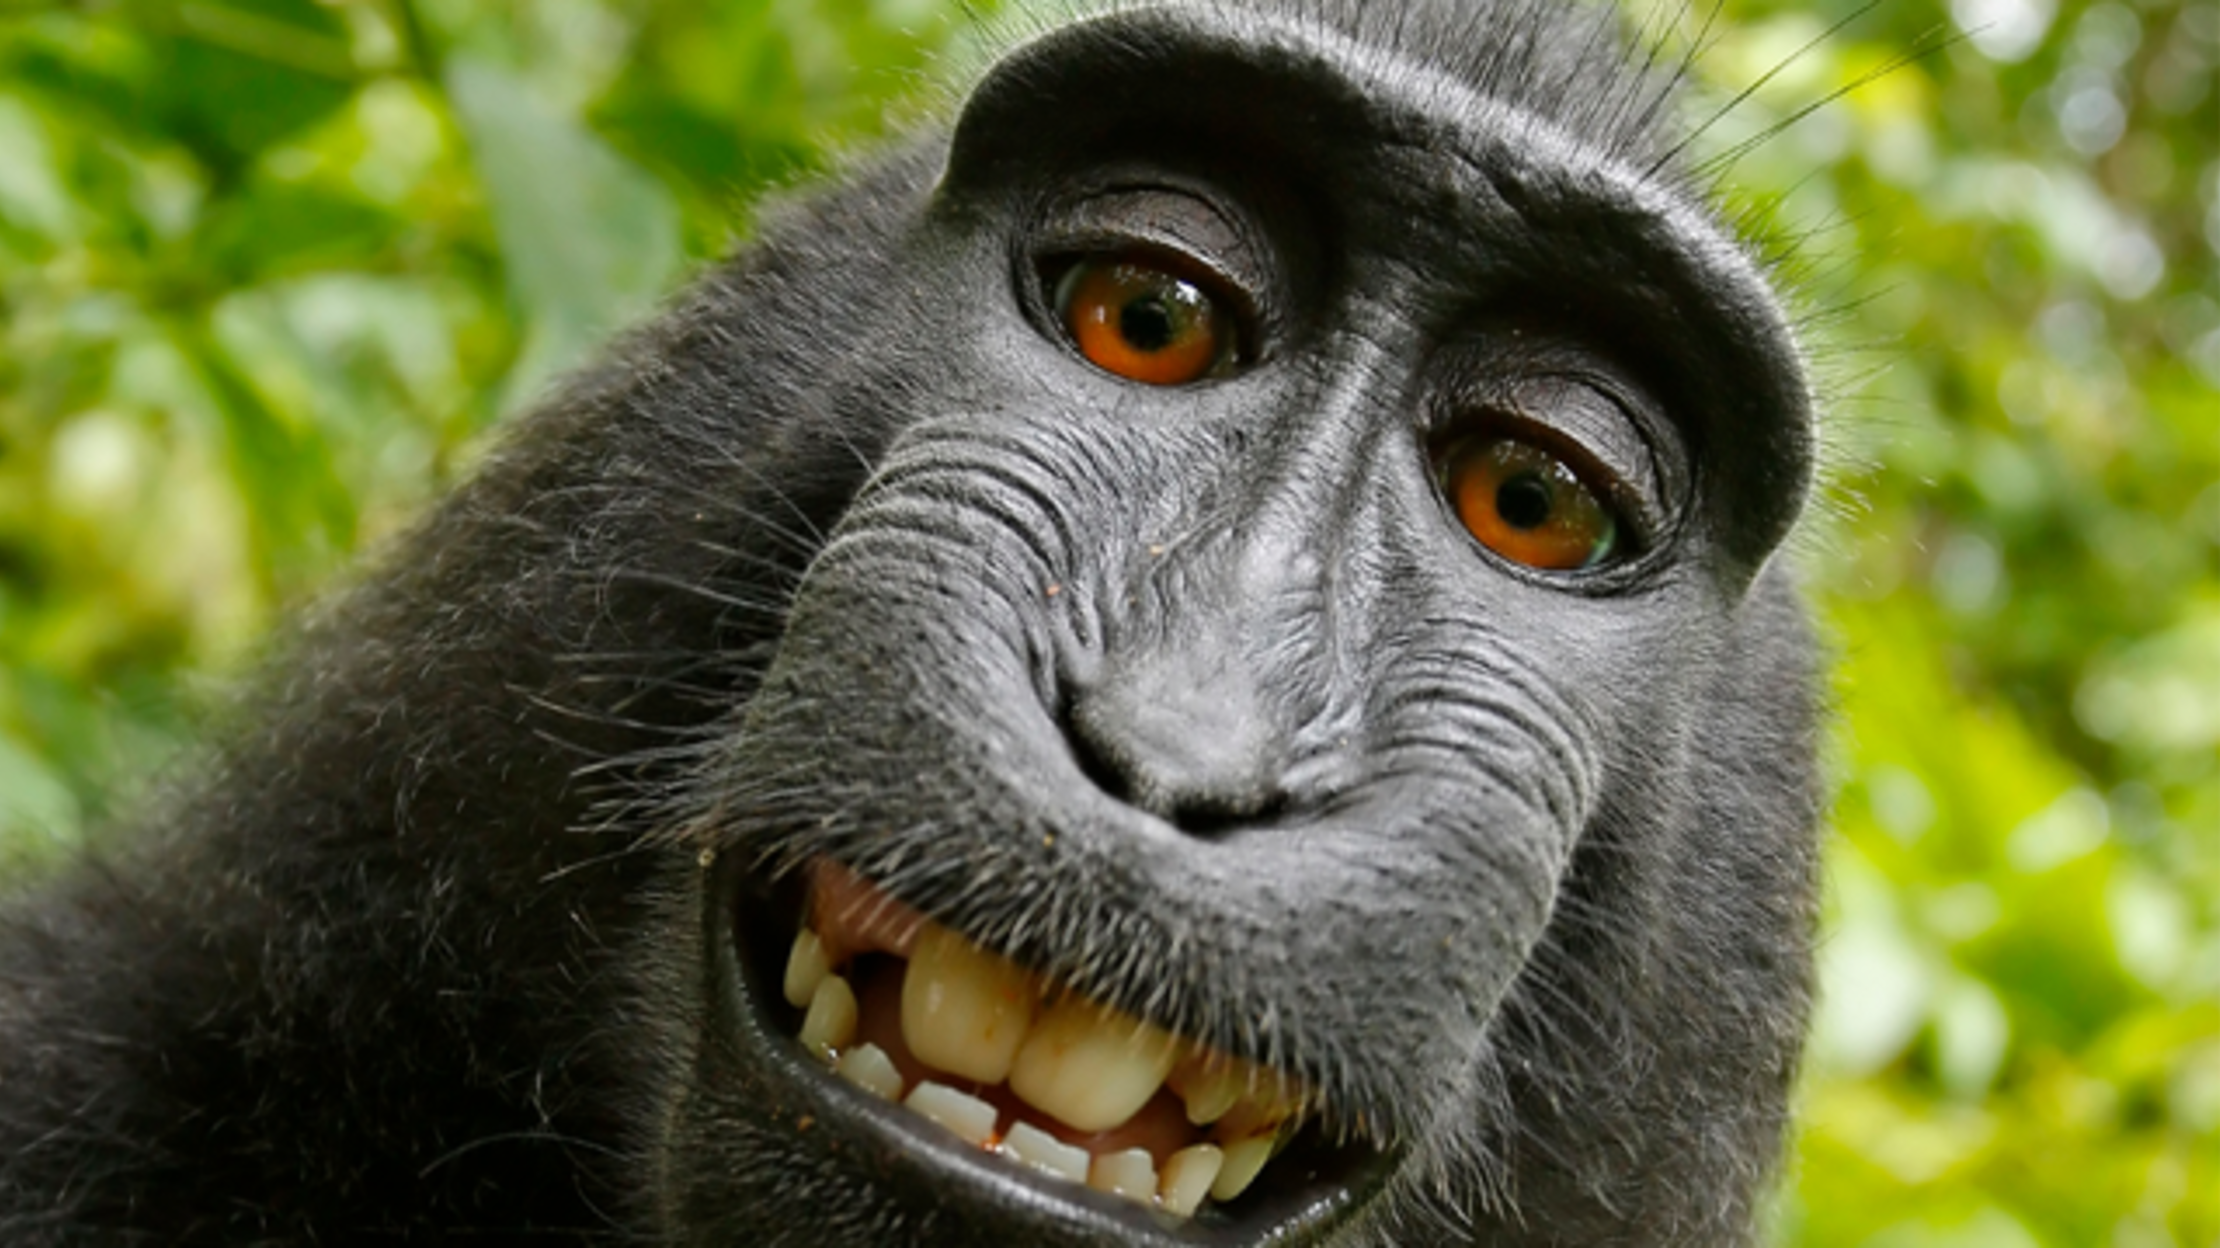 The Case of the Monkey Selfie: Animals Can't Own Copyrights, Judge Rules